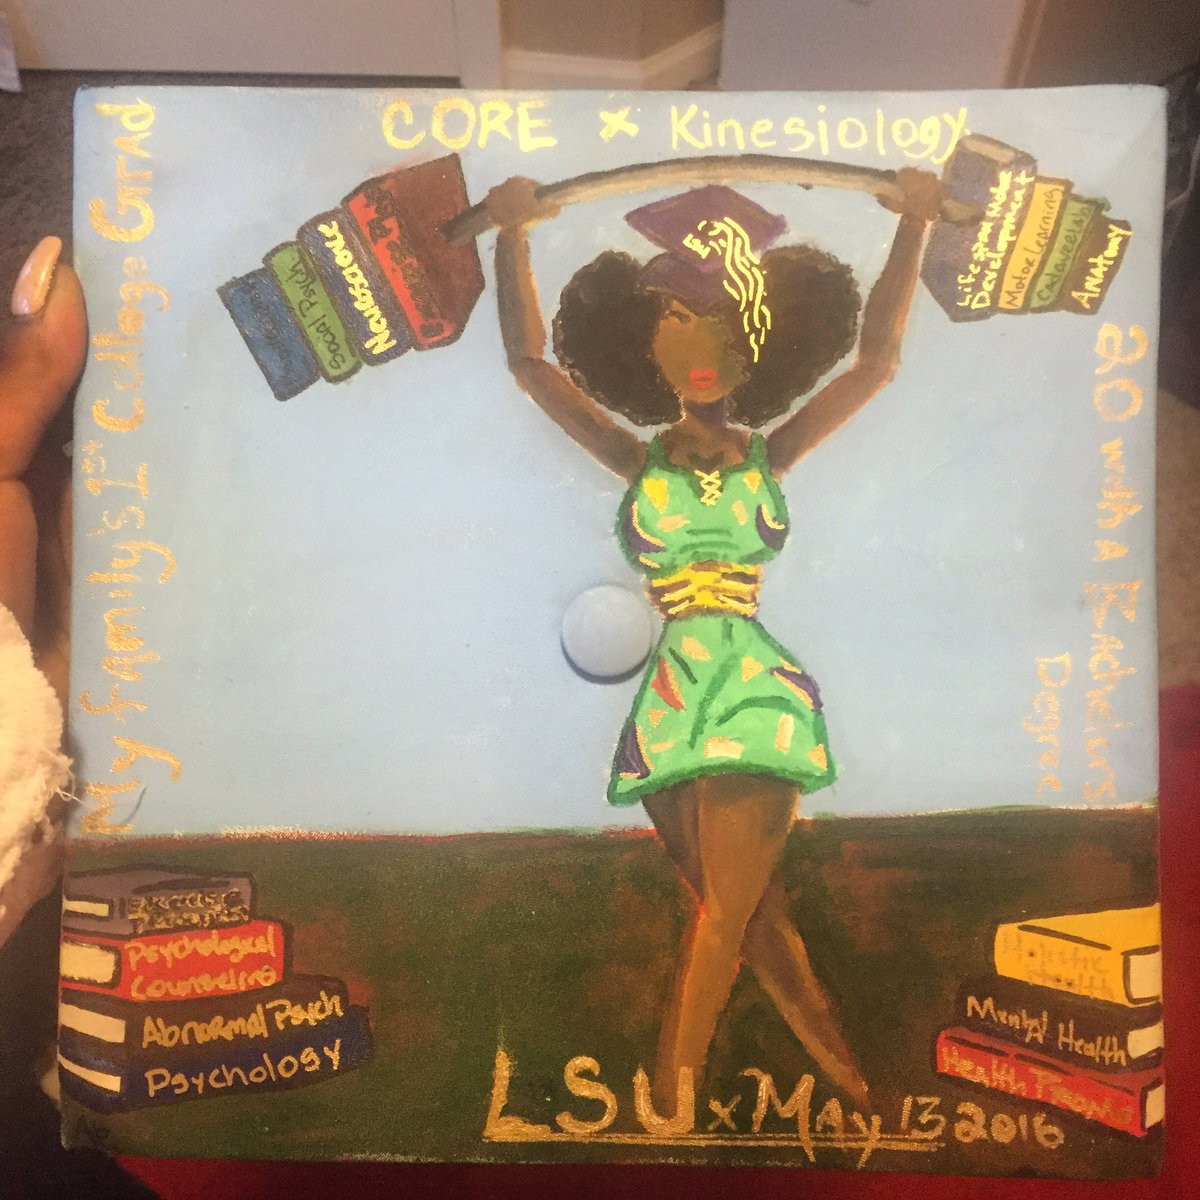 My grad cap, done by @bigzaddy_zigg !!!! Loved it!#heyblackgirl #blackgirlmagic #melaninBABY https://t.co/T4RYG6IreS